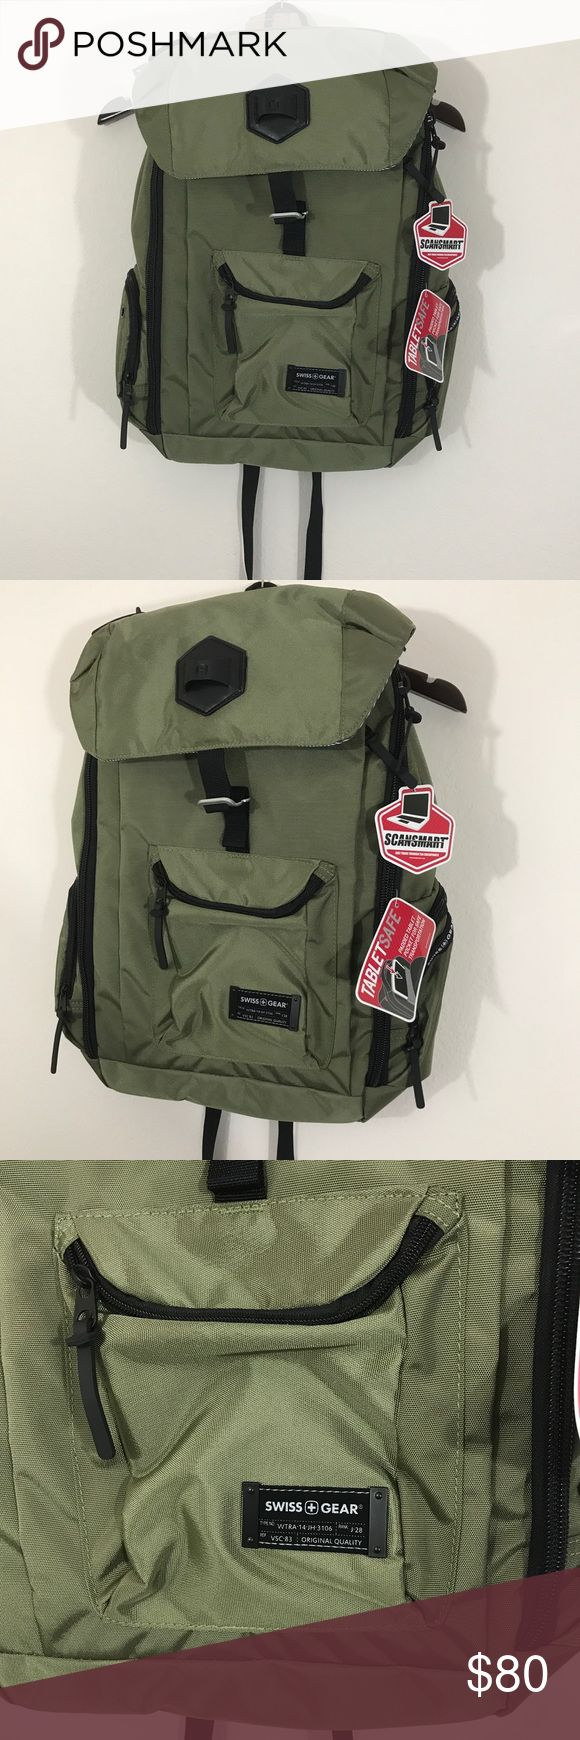 Swiss gear green backpack duffle tablet pocket New with tags Swiss gear back pack . No stains or tears. In perfect condition. All zippers work. SwissGear Bags